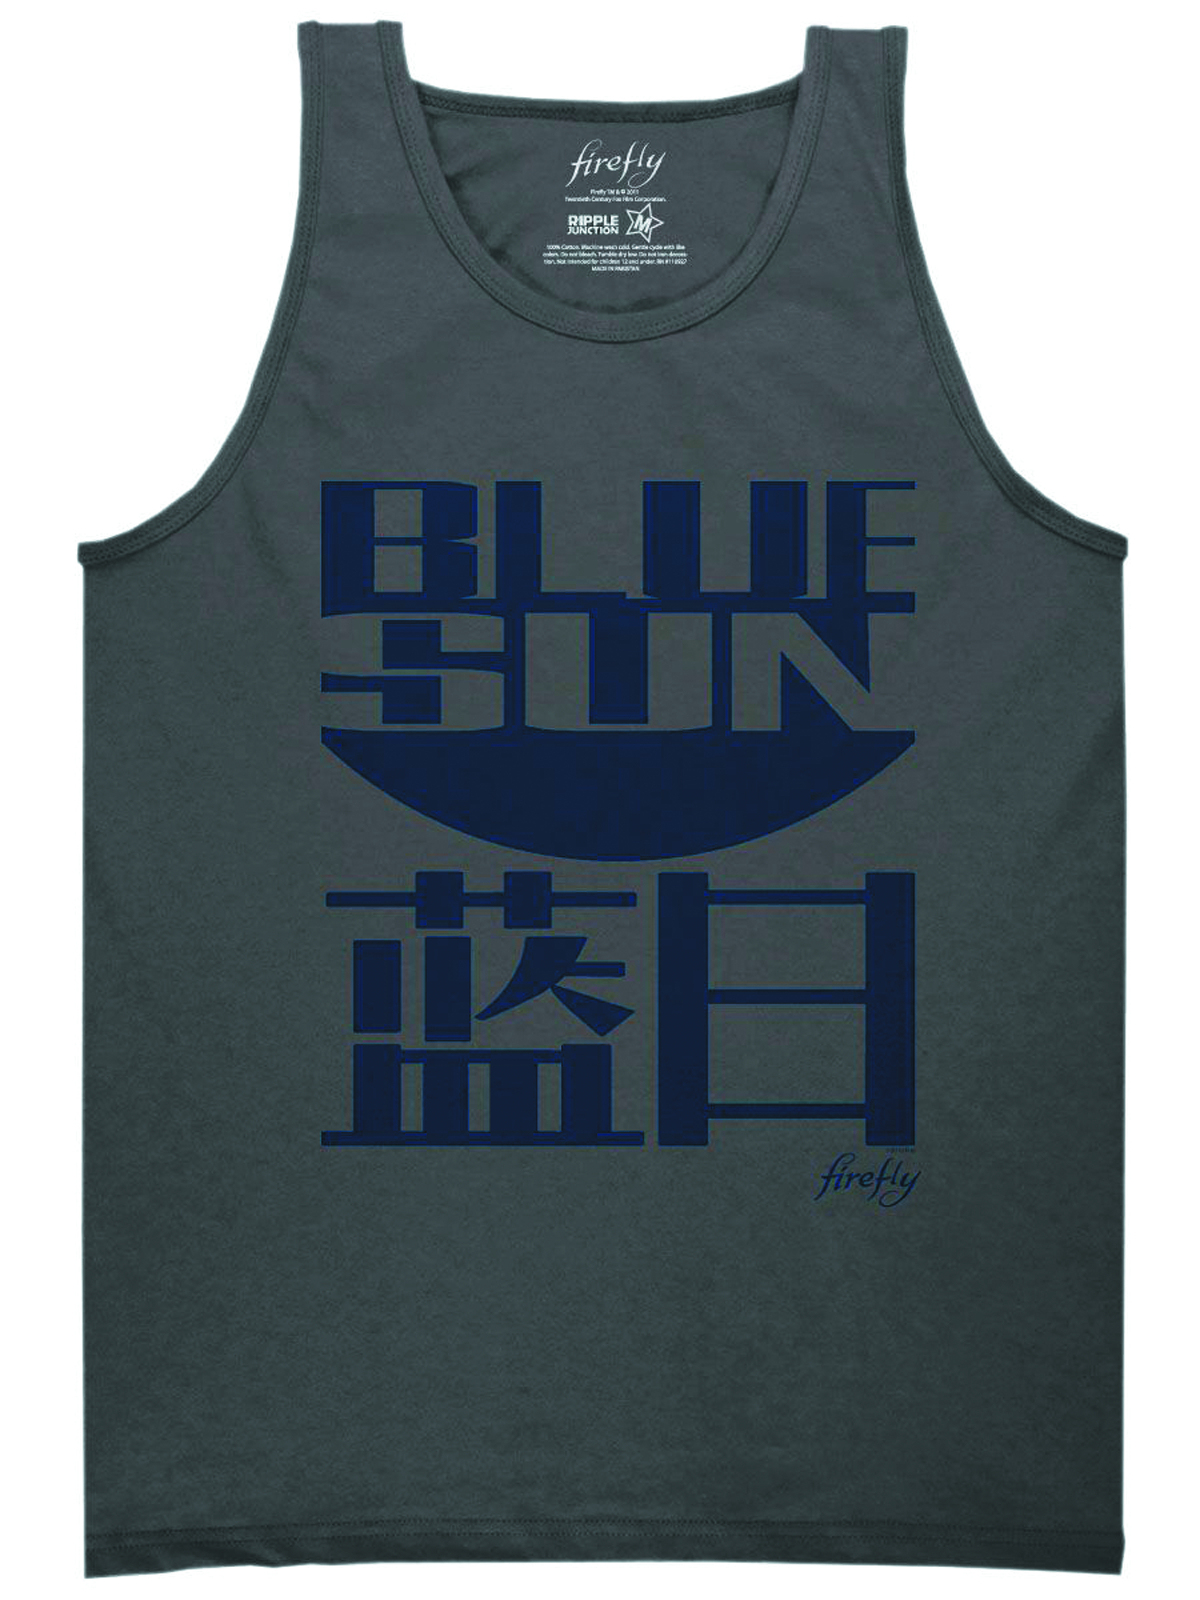 FIREFLY BLUE SUN PX CHARCOAL TANK SM